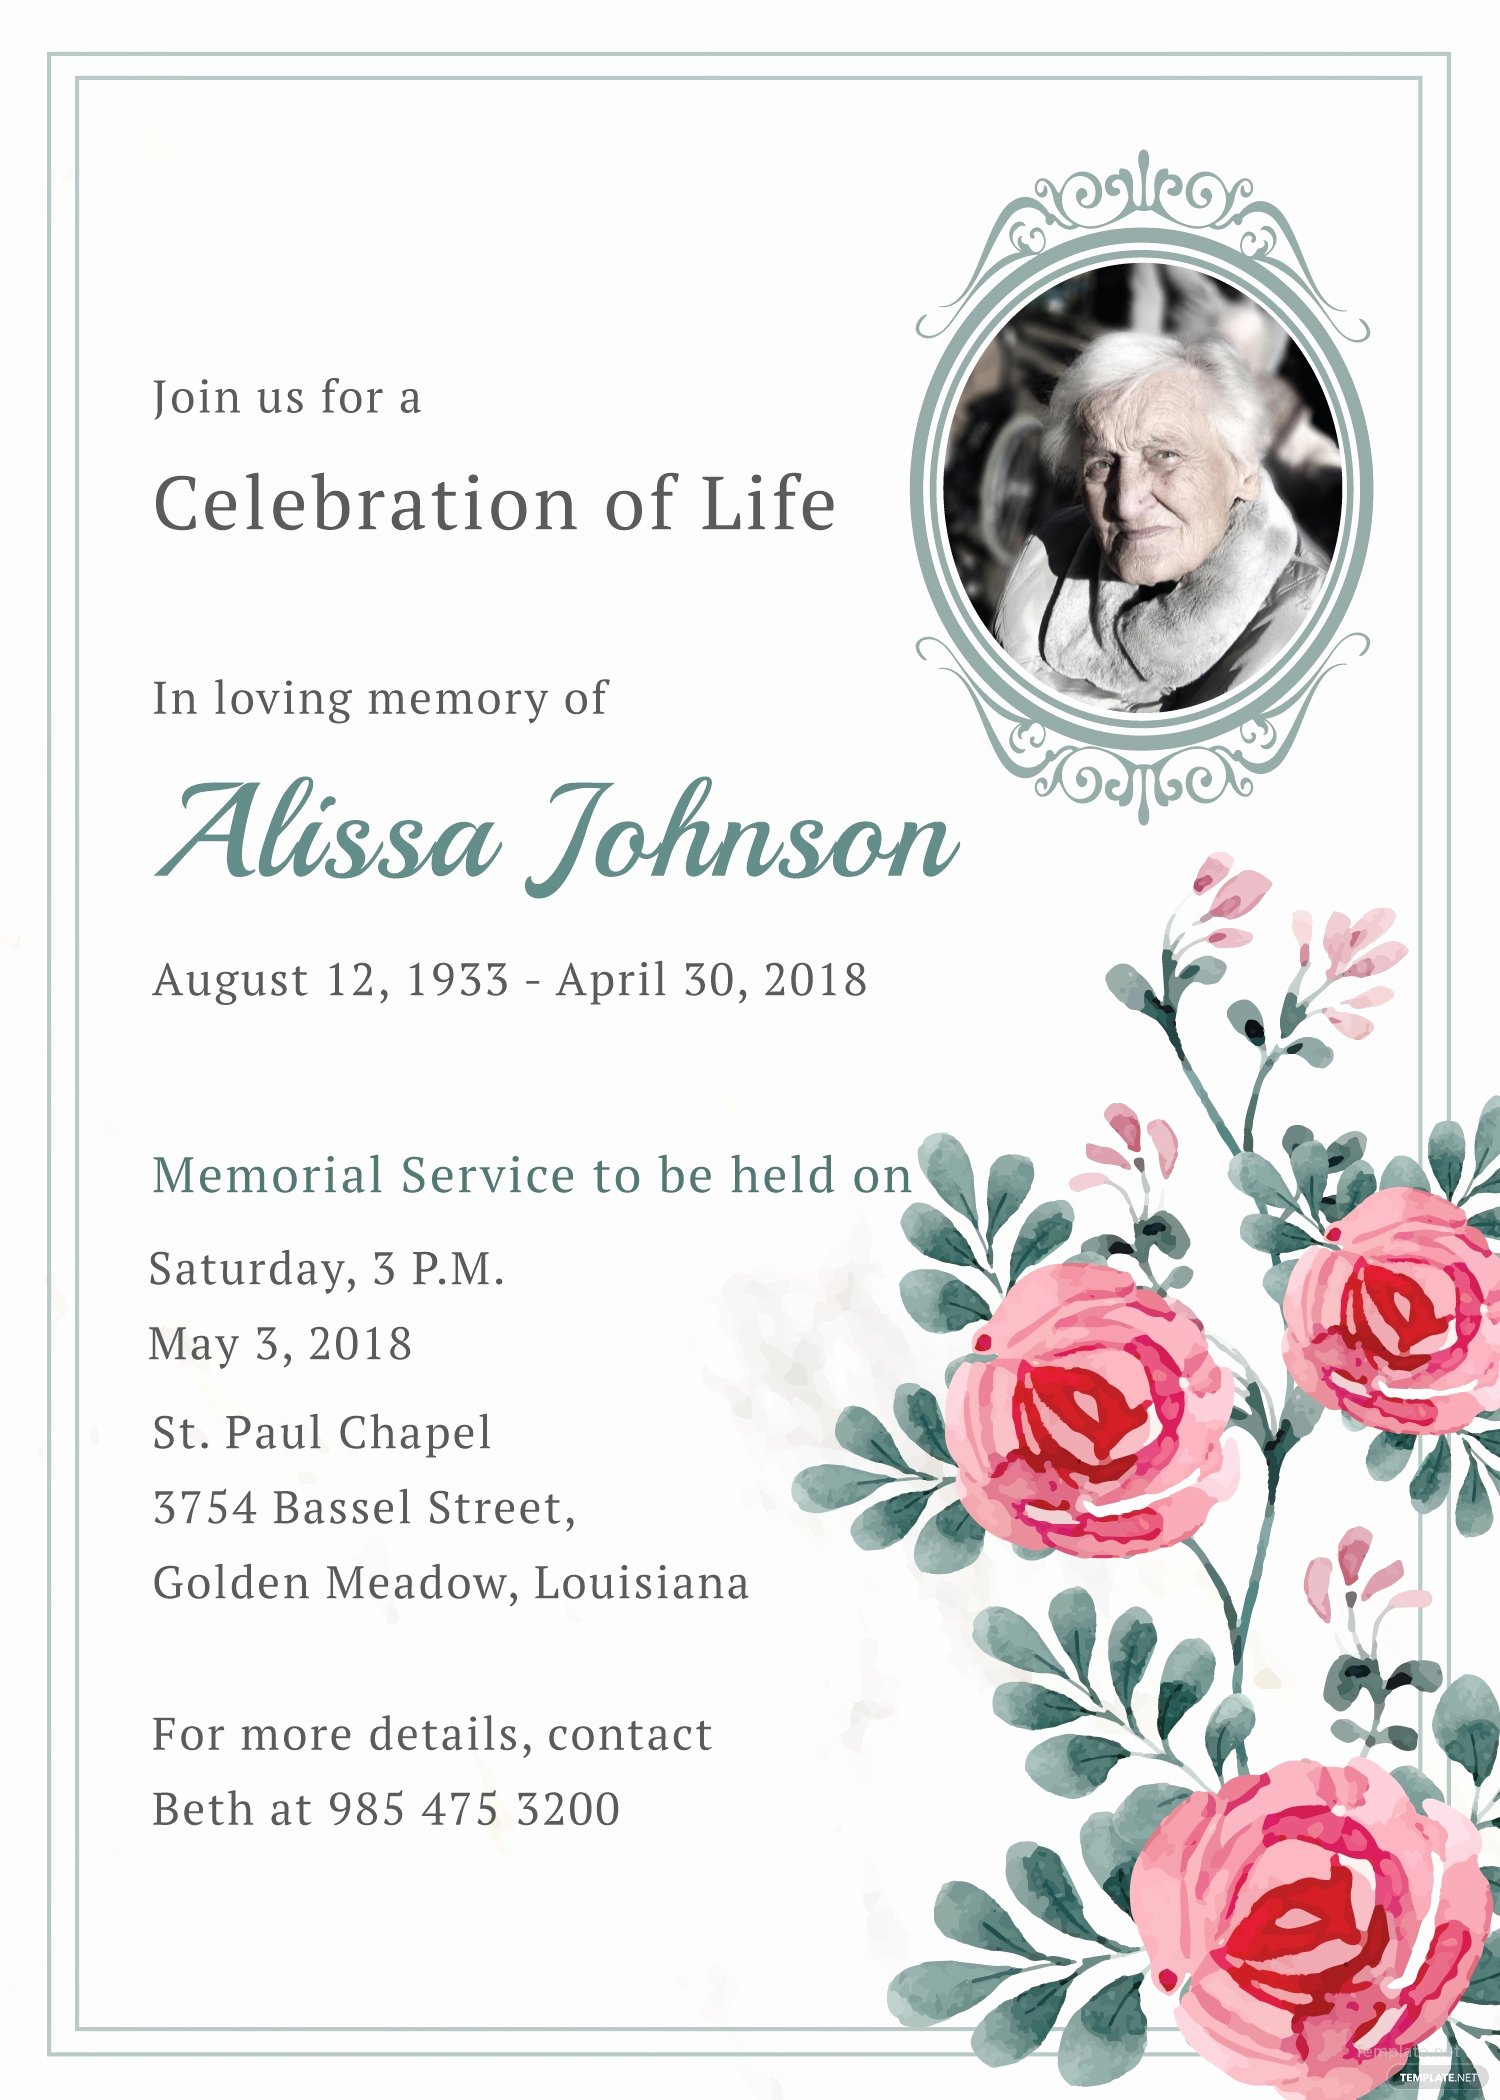 Funeral Invitation Template Free Fresh Memorial Service Invitation Template In Adobe Illustrator